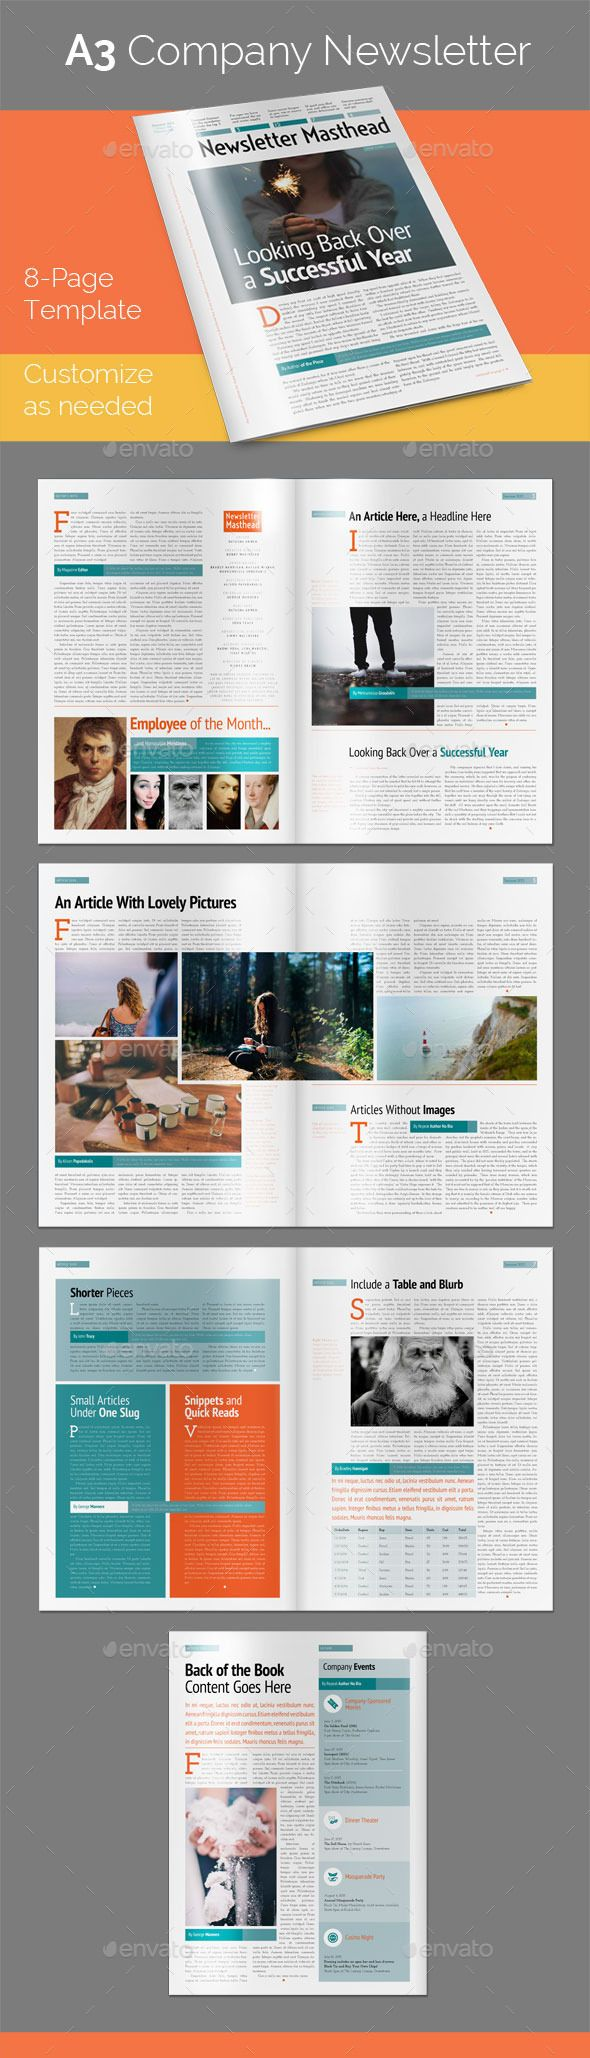 8-Page A3 Company Newsletter Template #design Download: http://graphicriver.net/item/8page-a3-company-newsletter/11078862?ref=ksioks